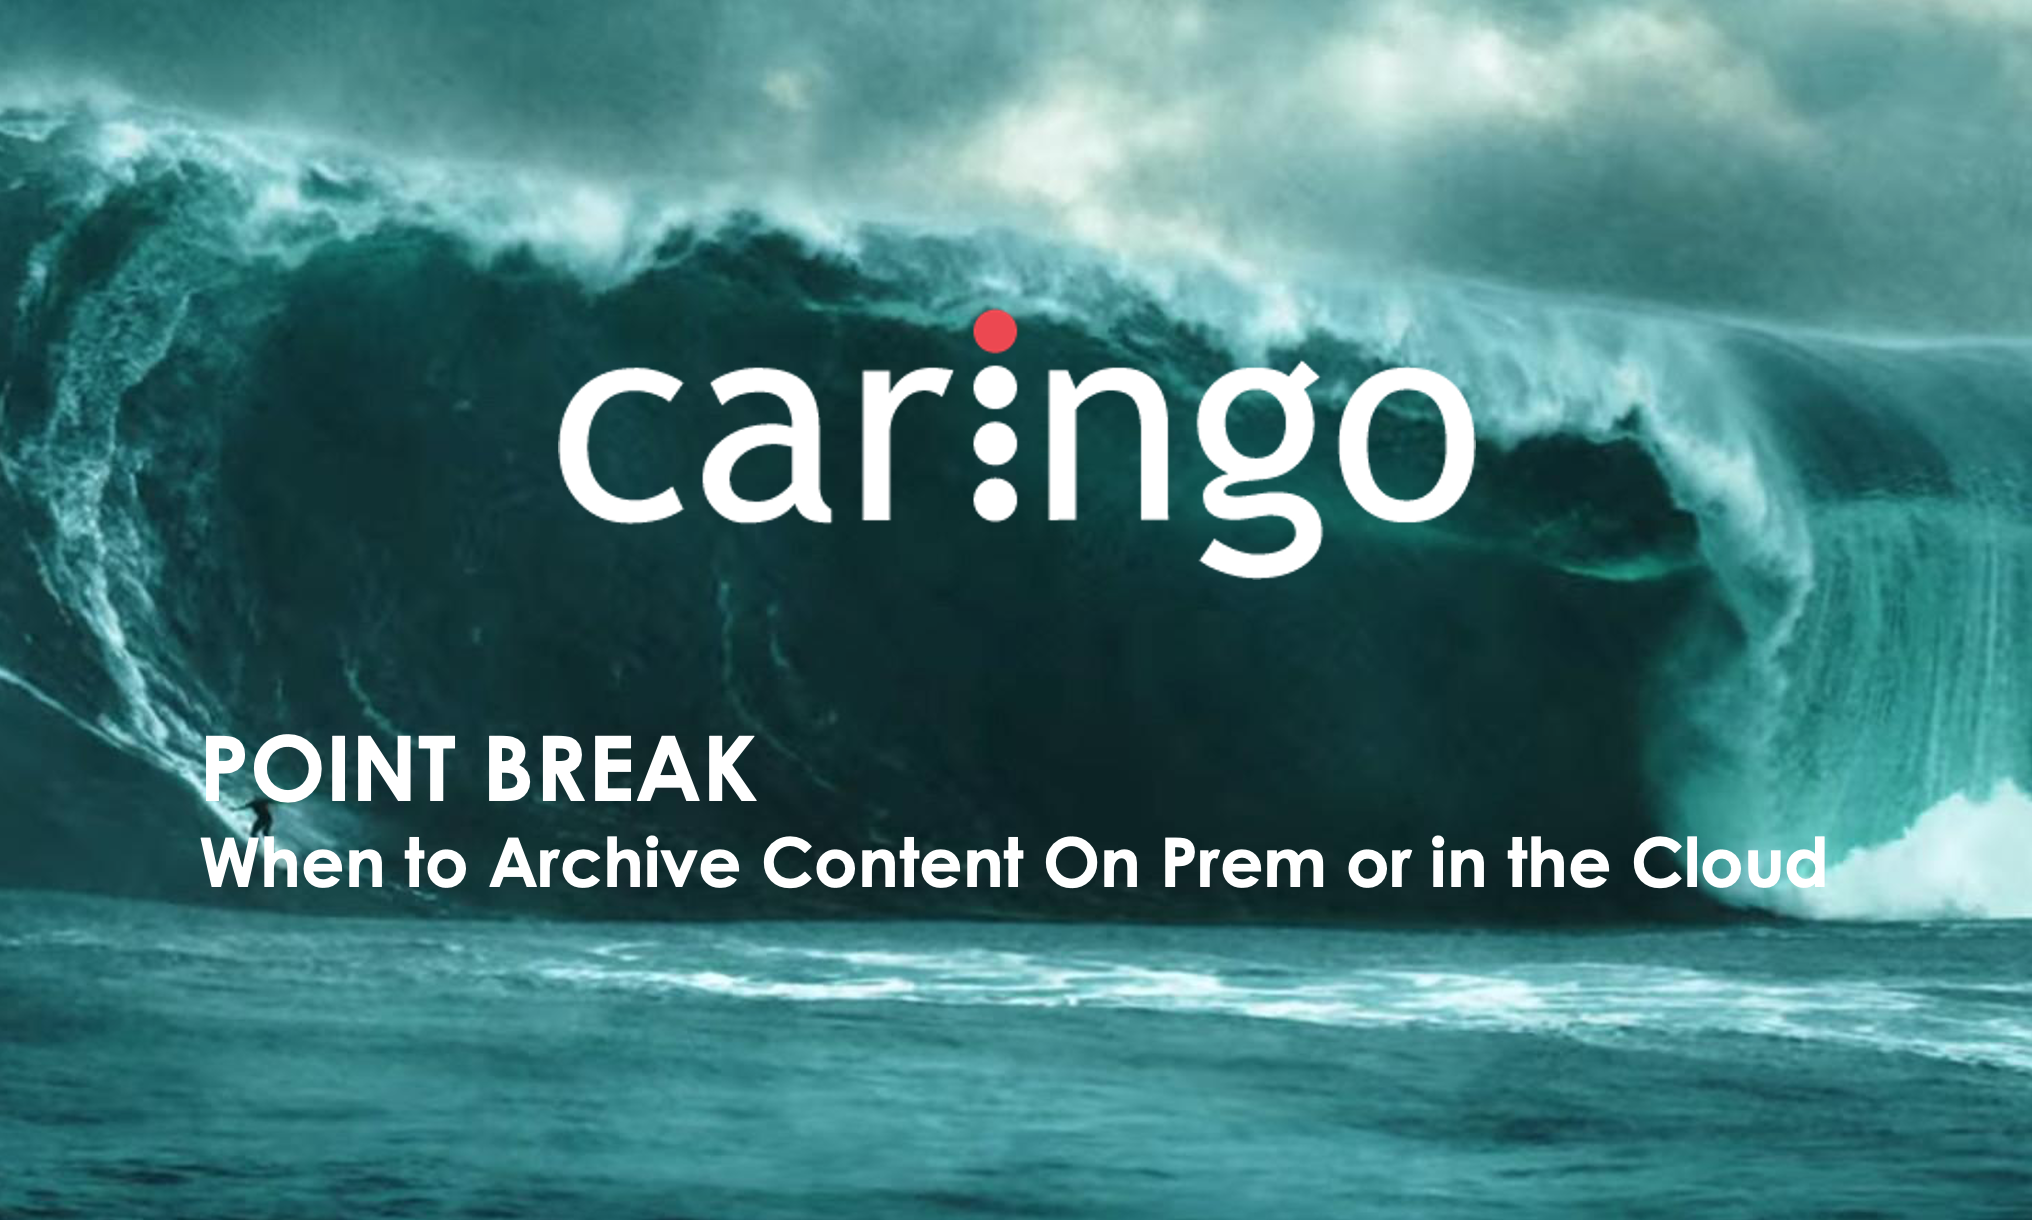 Caringo Webinar: Point Break: When to Archive Content On Prem or in the Cloud